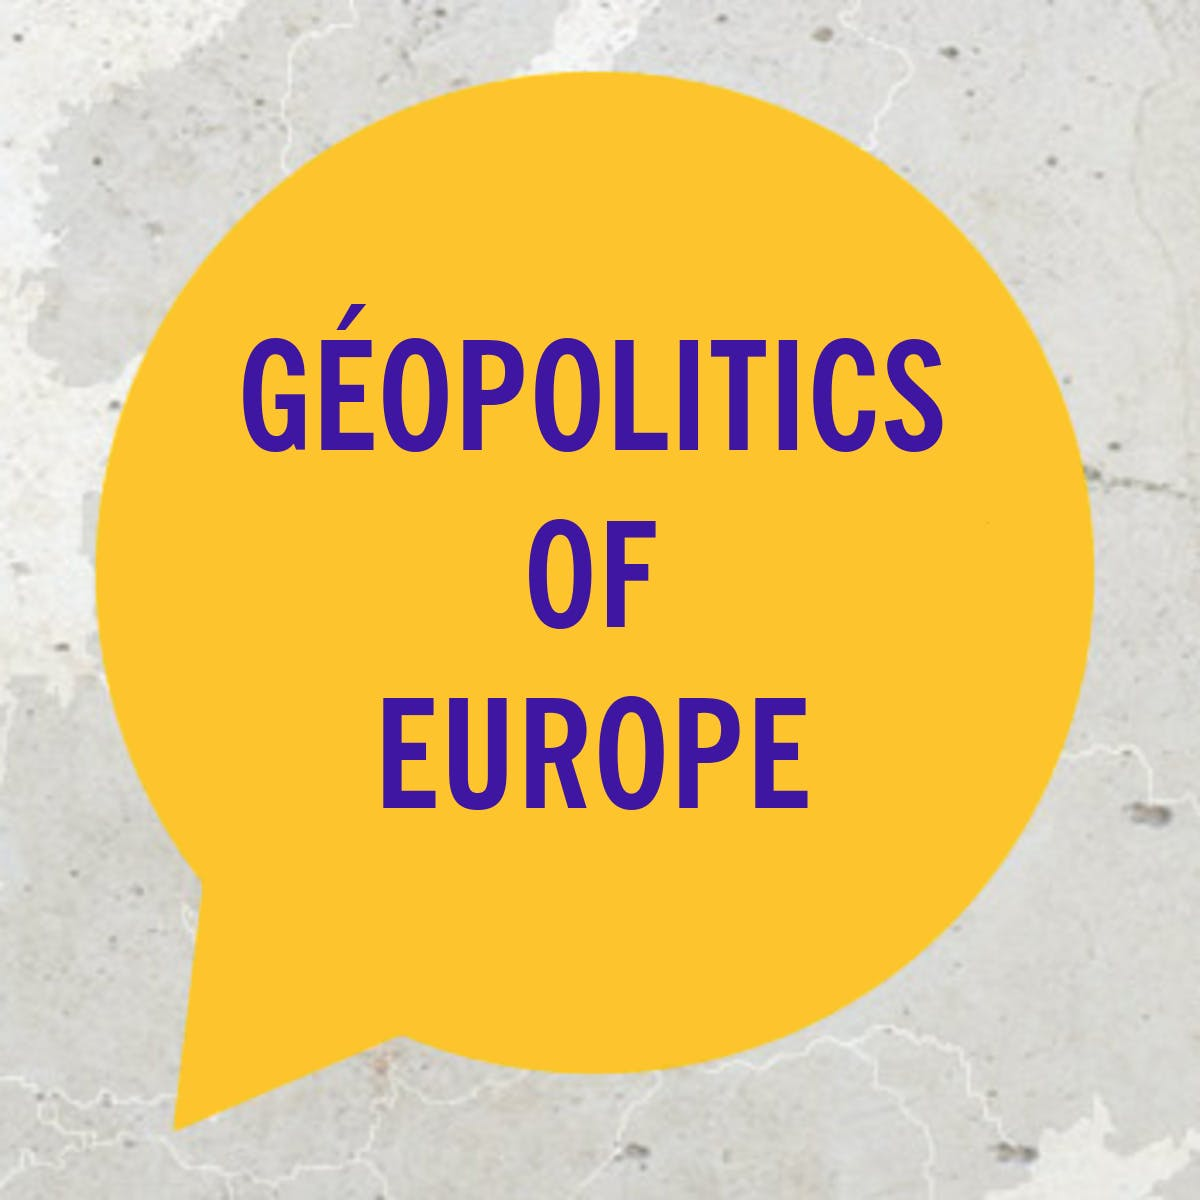 Geopolitics of Europe